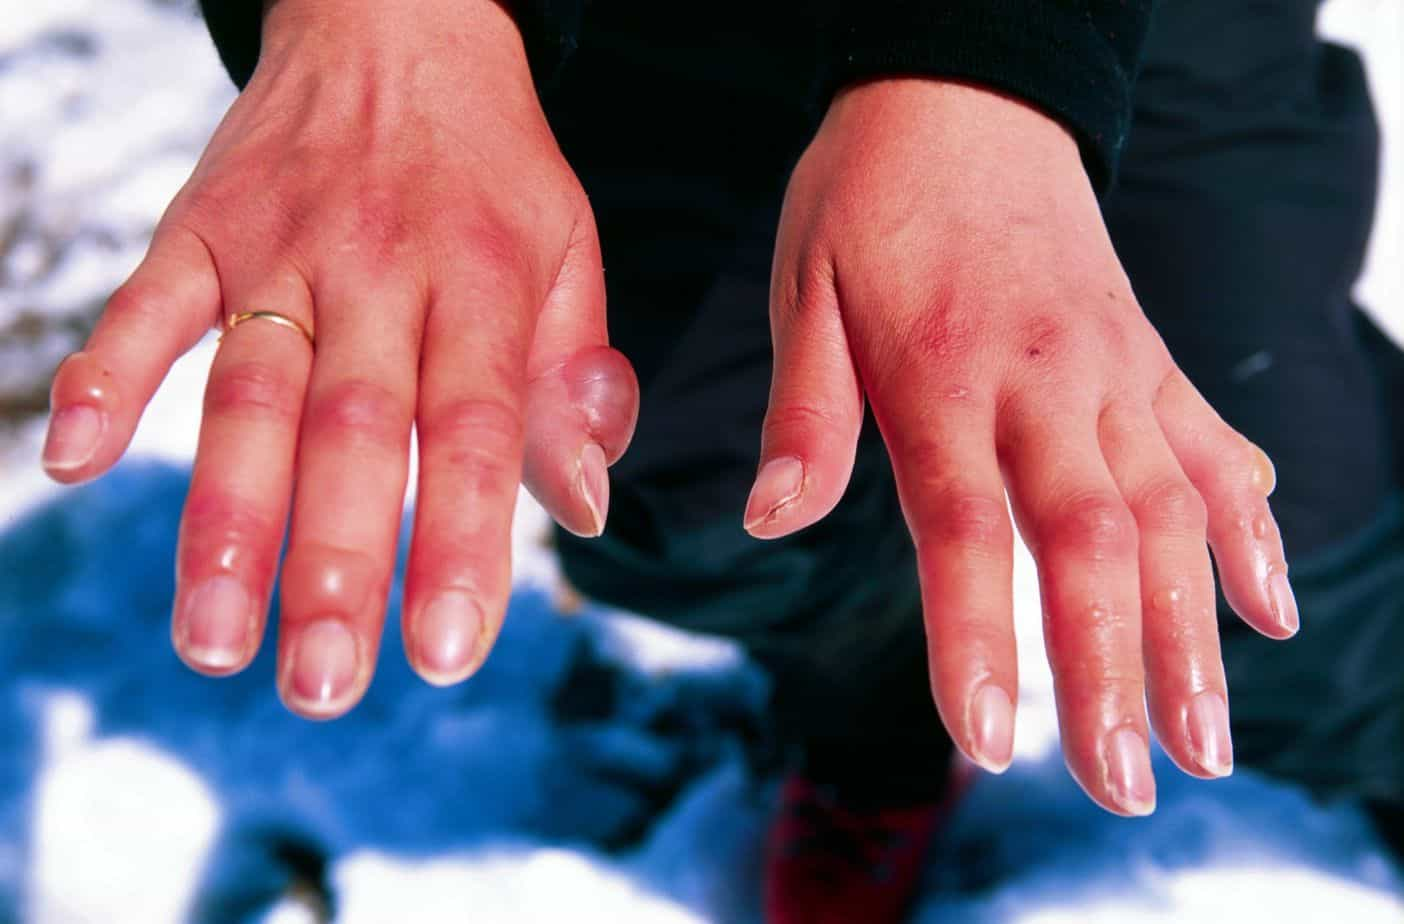 Dealing With Frostbite